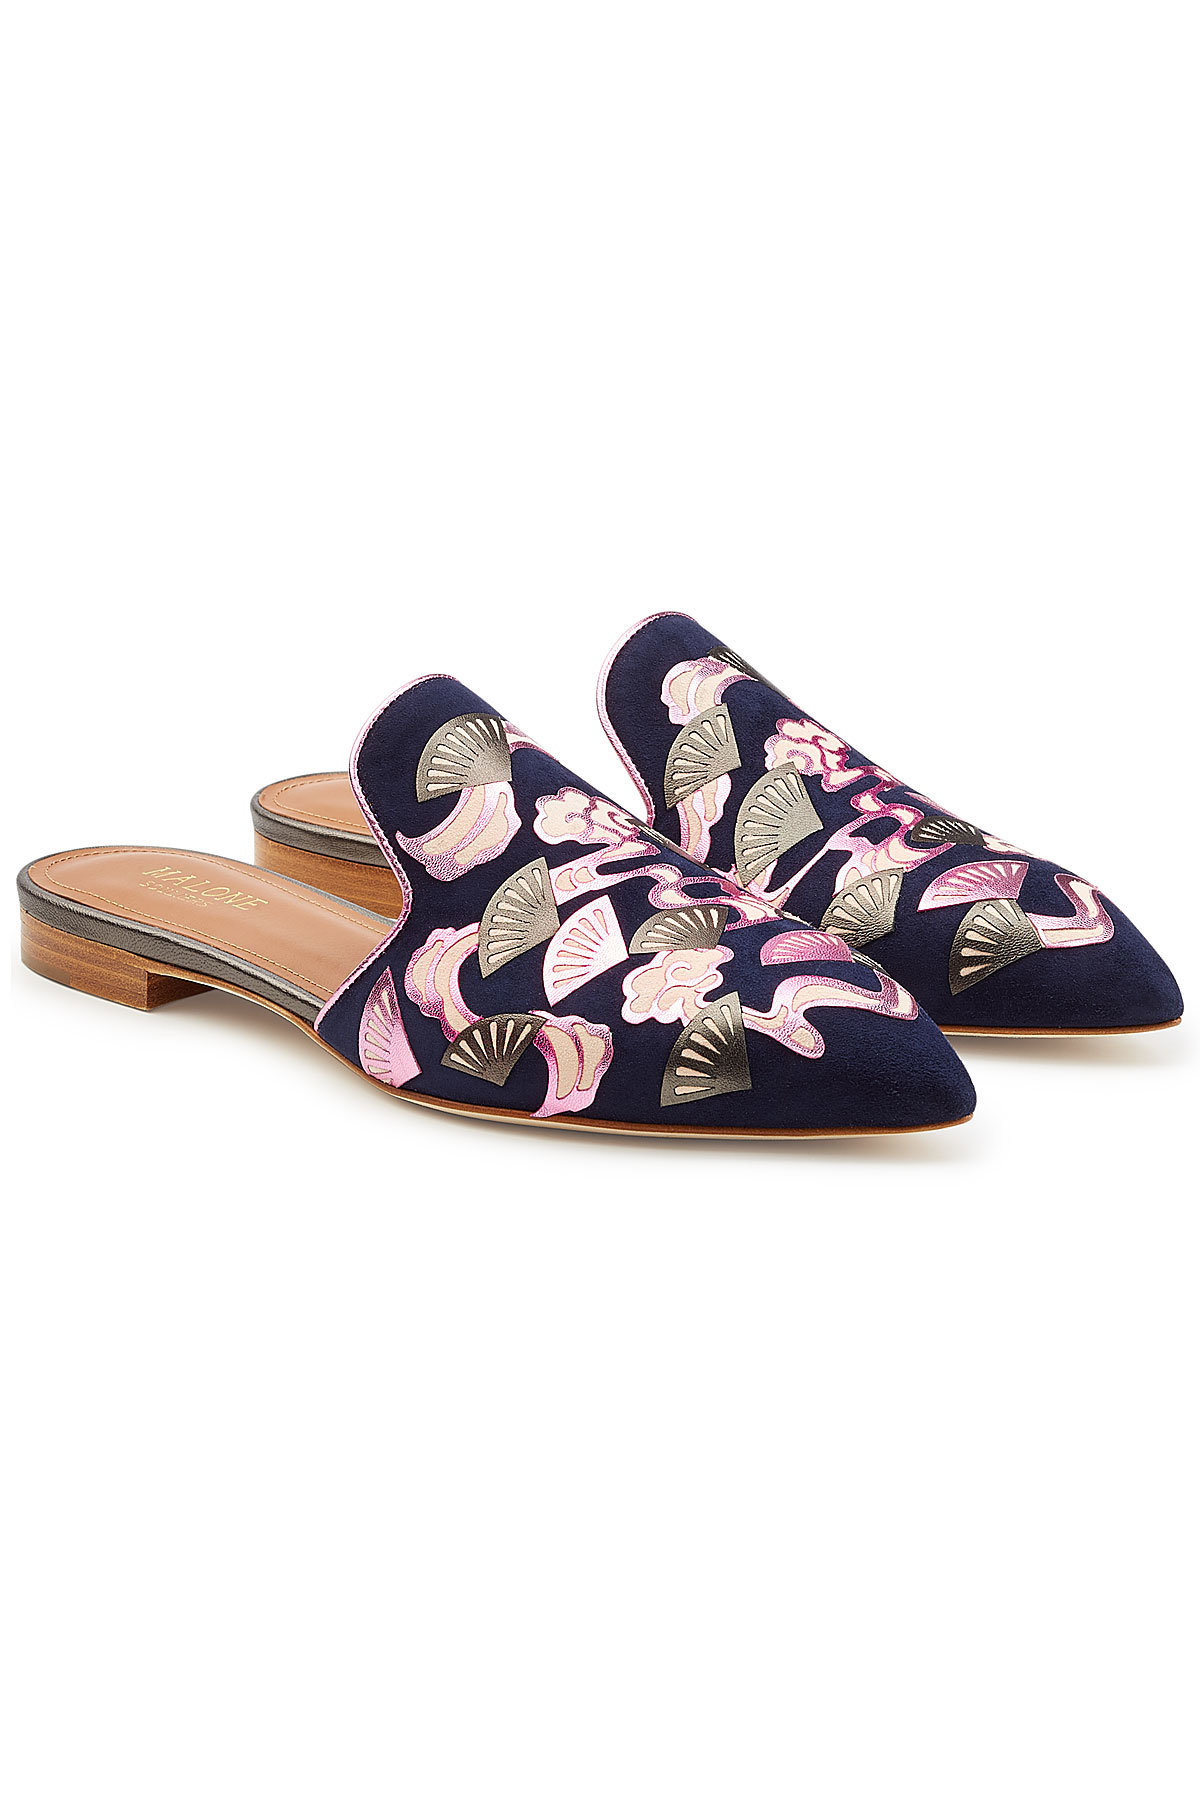 MALONE SOULIERS Vilvin Mules with Leather Gr. EU 38